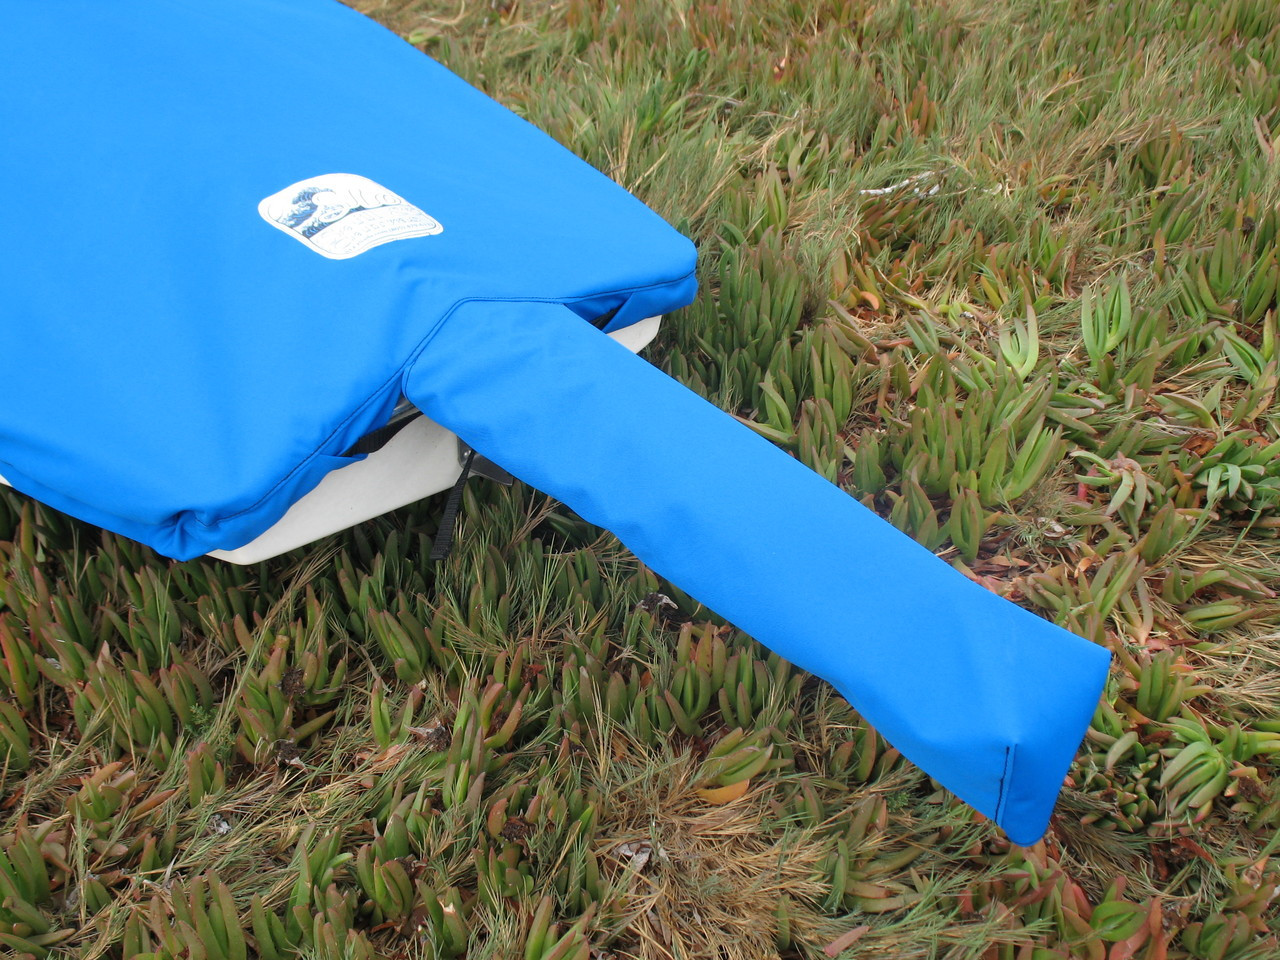 Tail on cover protects your spars on deck.